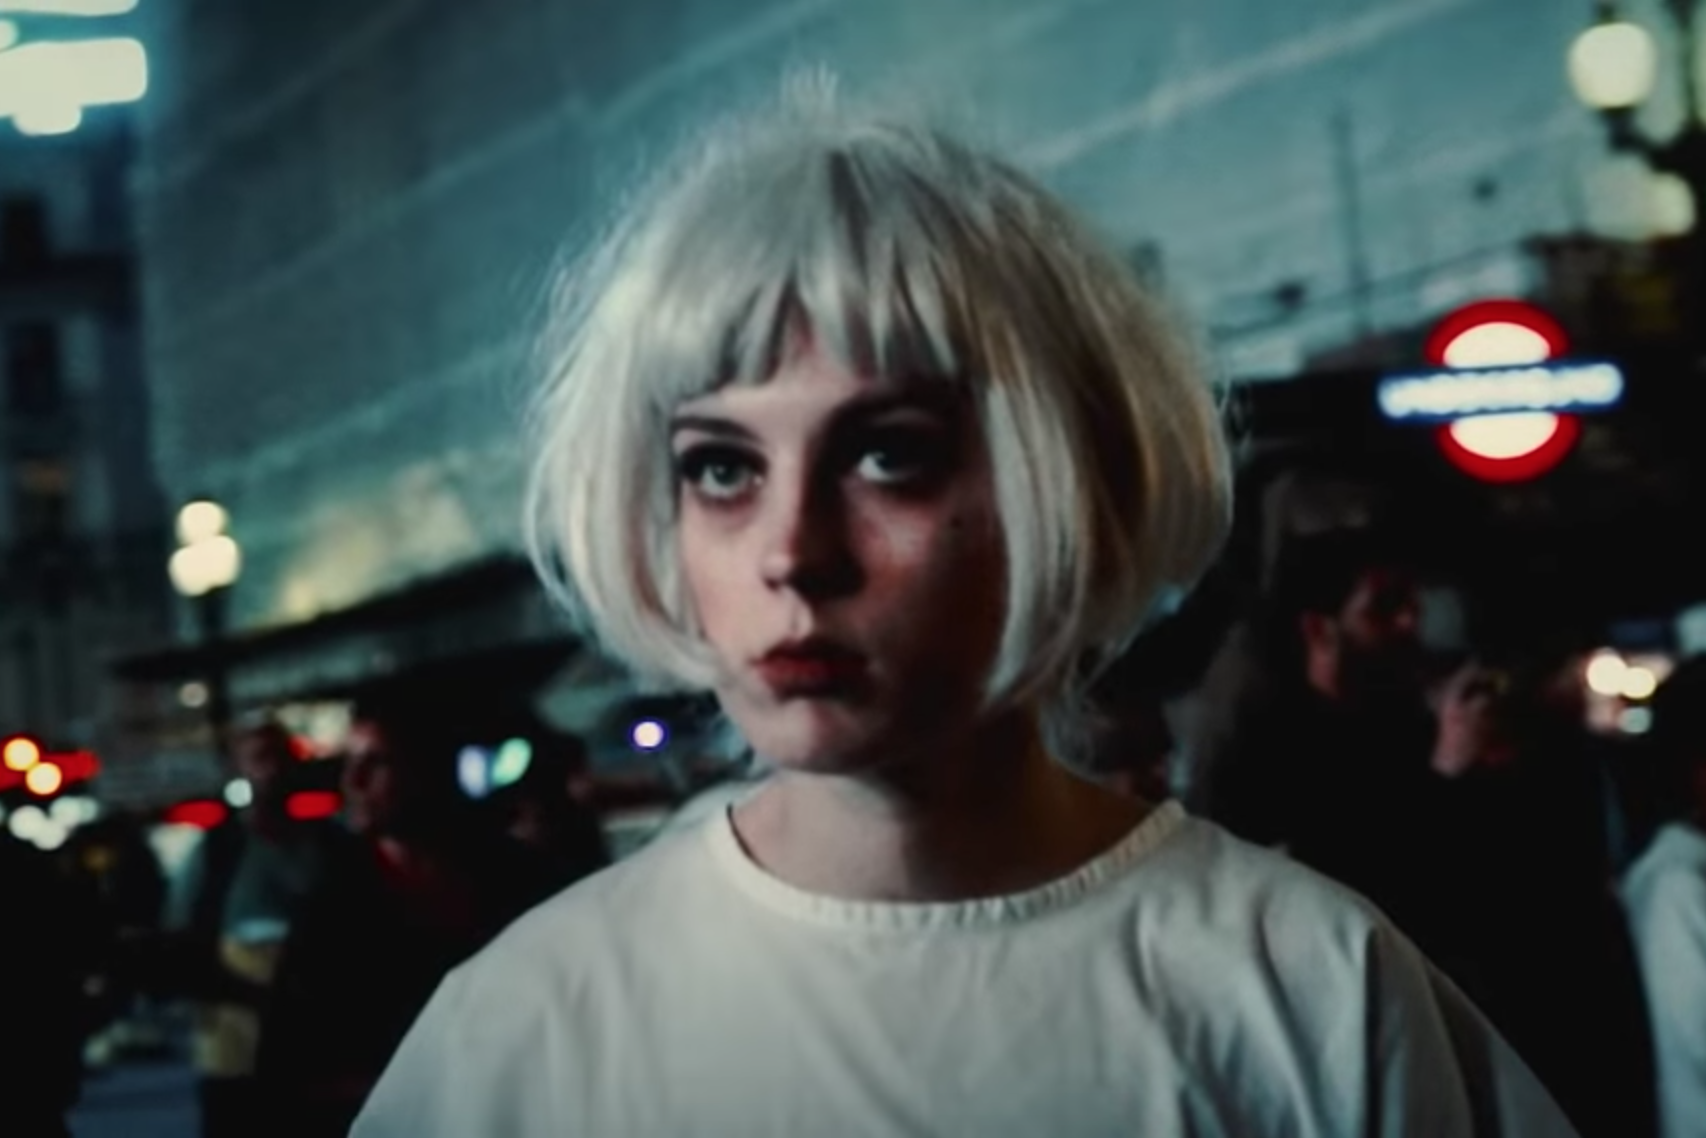 Black Honey unveil video for 'Crowded City'